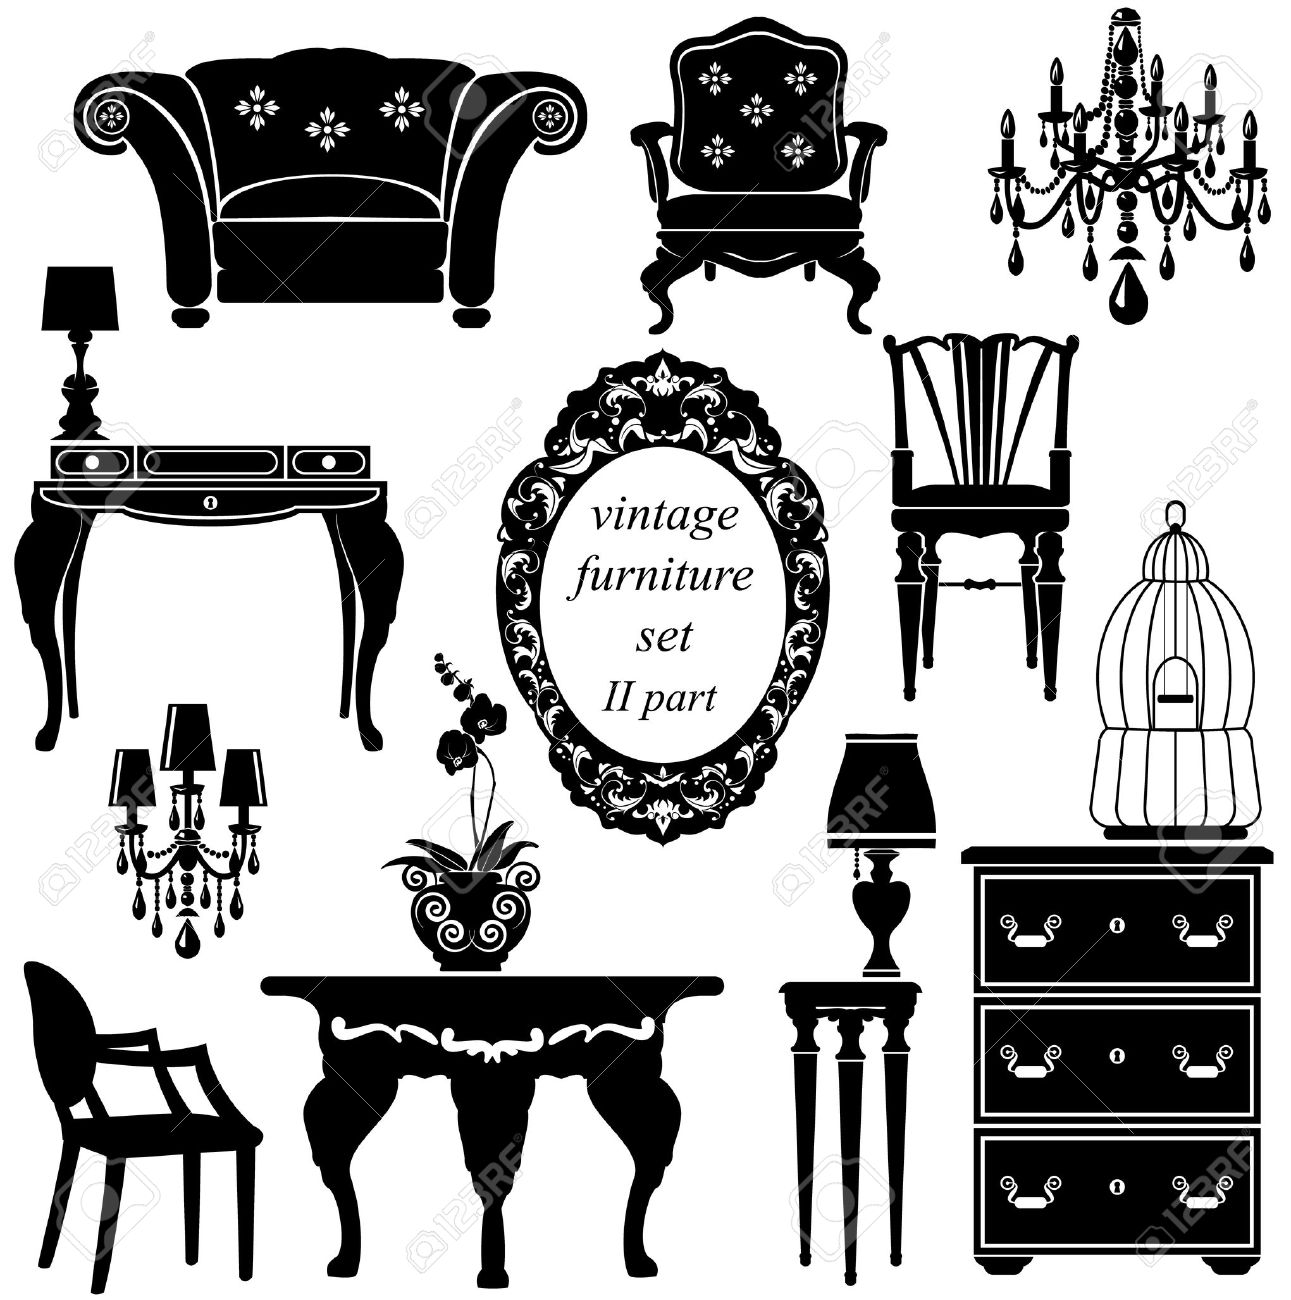 Antique chair drawing - Set Of Antique Furniture Isolated Black Silhouettes Stock Vector 27580289